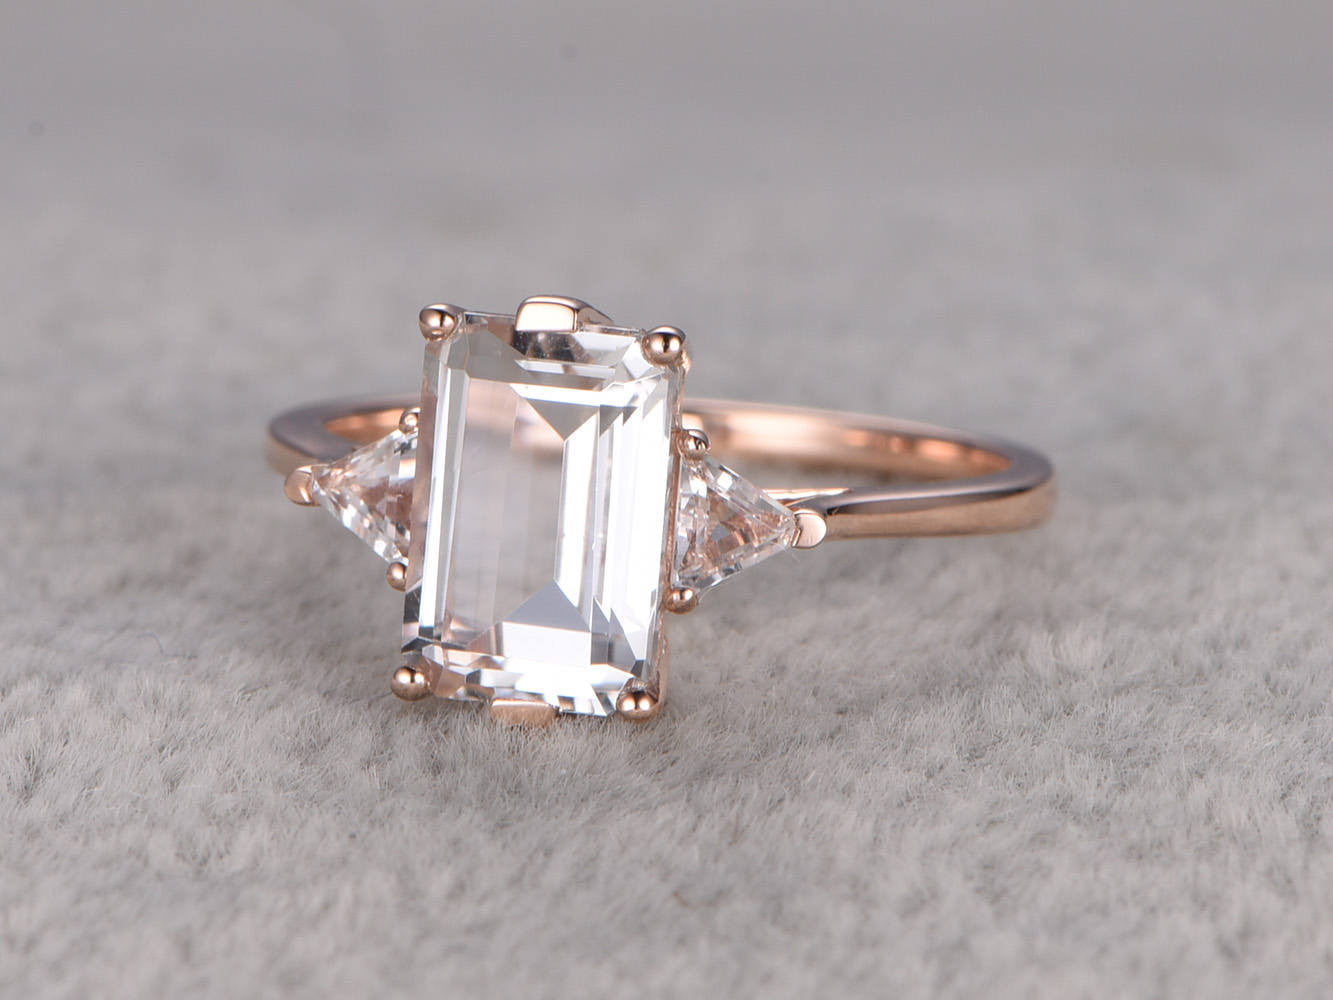 White Topaz Engagement ring,3 stone ring,6x9mm Emerald cut,14K,3mm Trillion Cut Topazs,Rose gold,Promise Ring,Bridal Ring,plain gold band